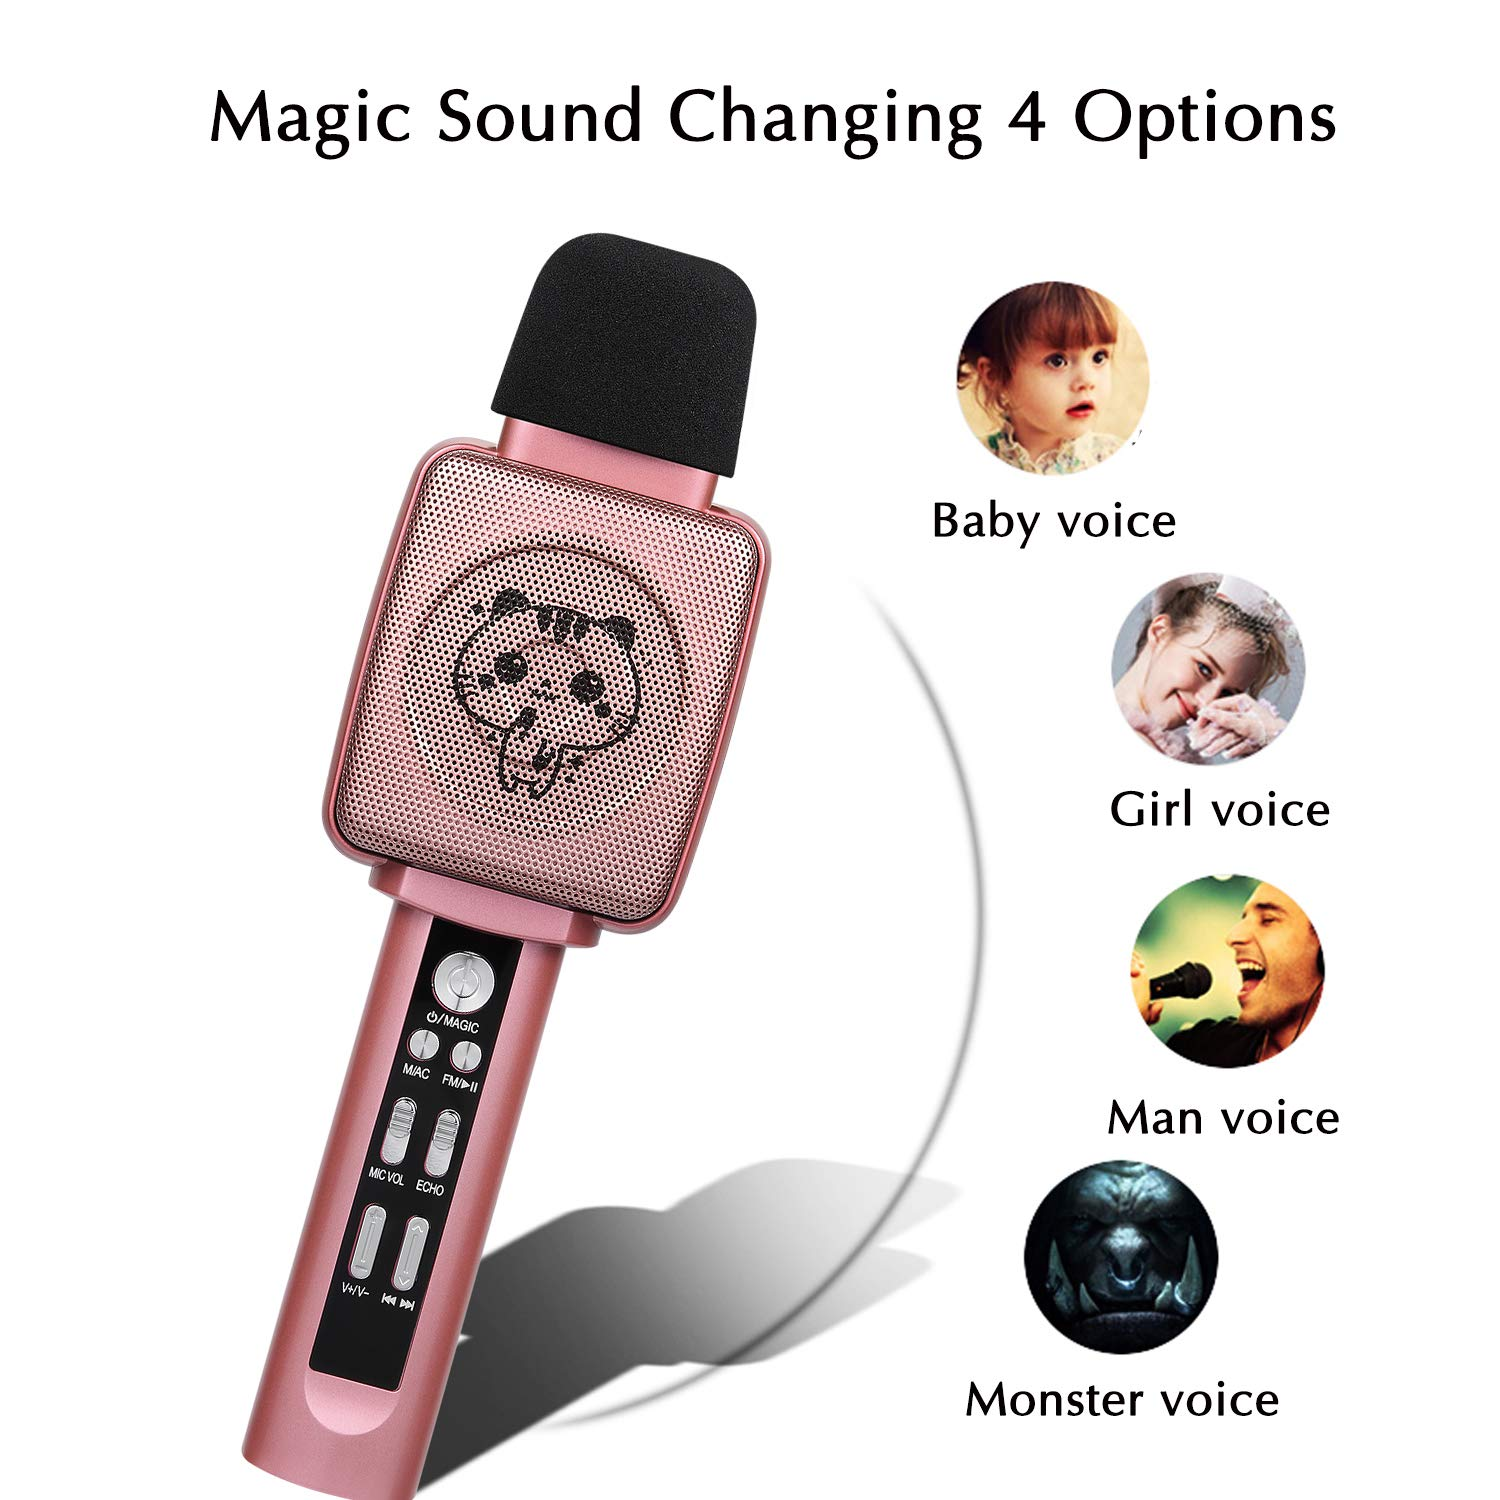 HOKLAN Kids Karaoke Microphone, Birthday Gifts for 3 4 5 6 7 8 9 Years Old Kids Girls, Birthday Presents & Toys for Children, Handheld Bluetooth Karaoke Machine with Voice Changer & Built-in Speaker by HOKLAN (Image #4)